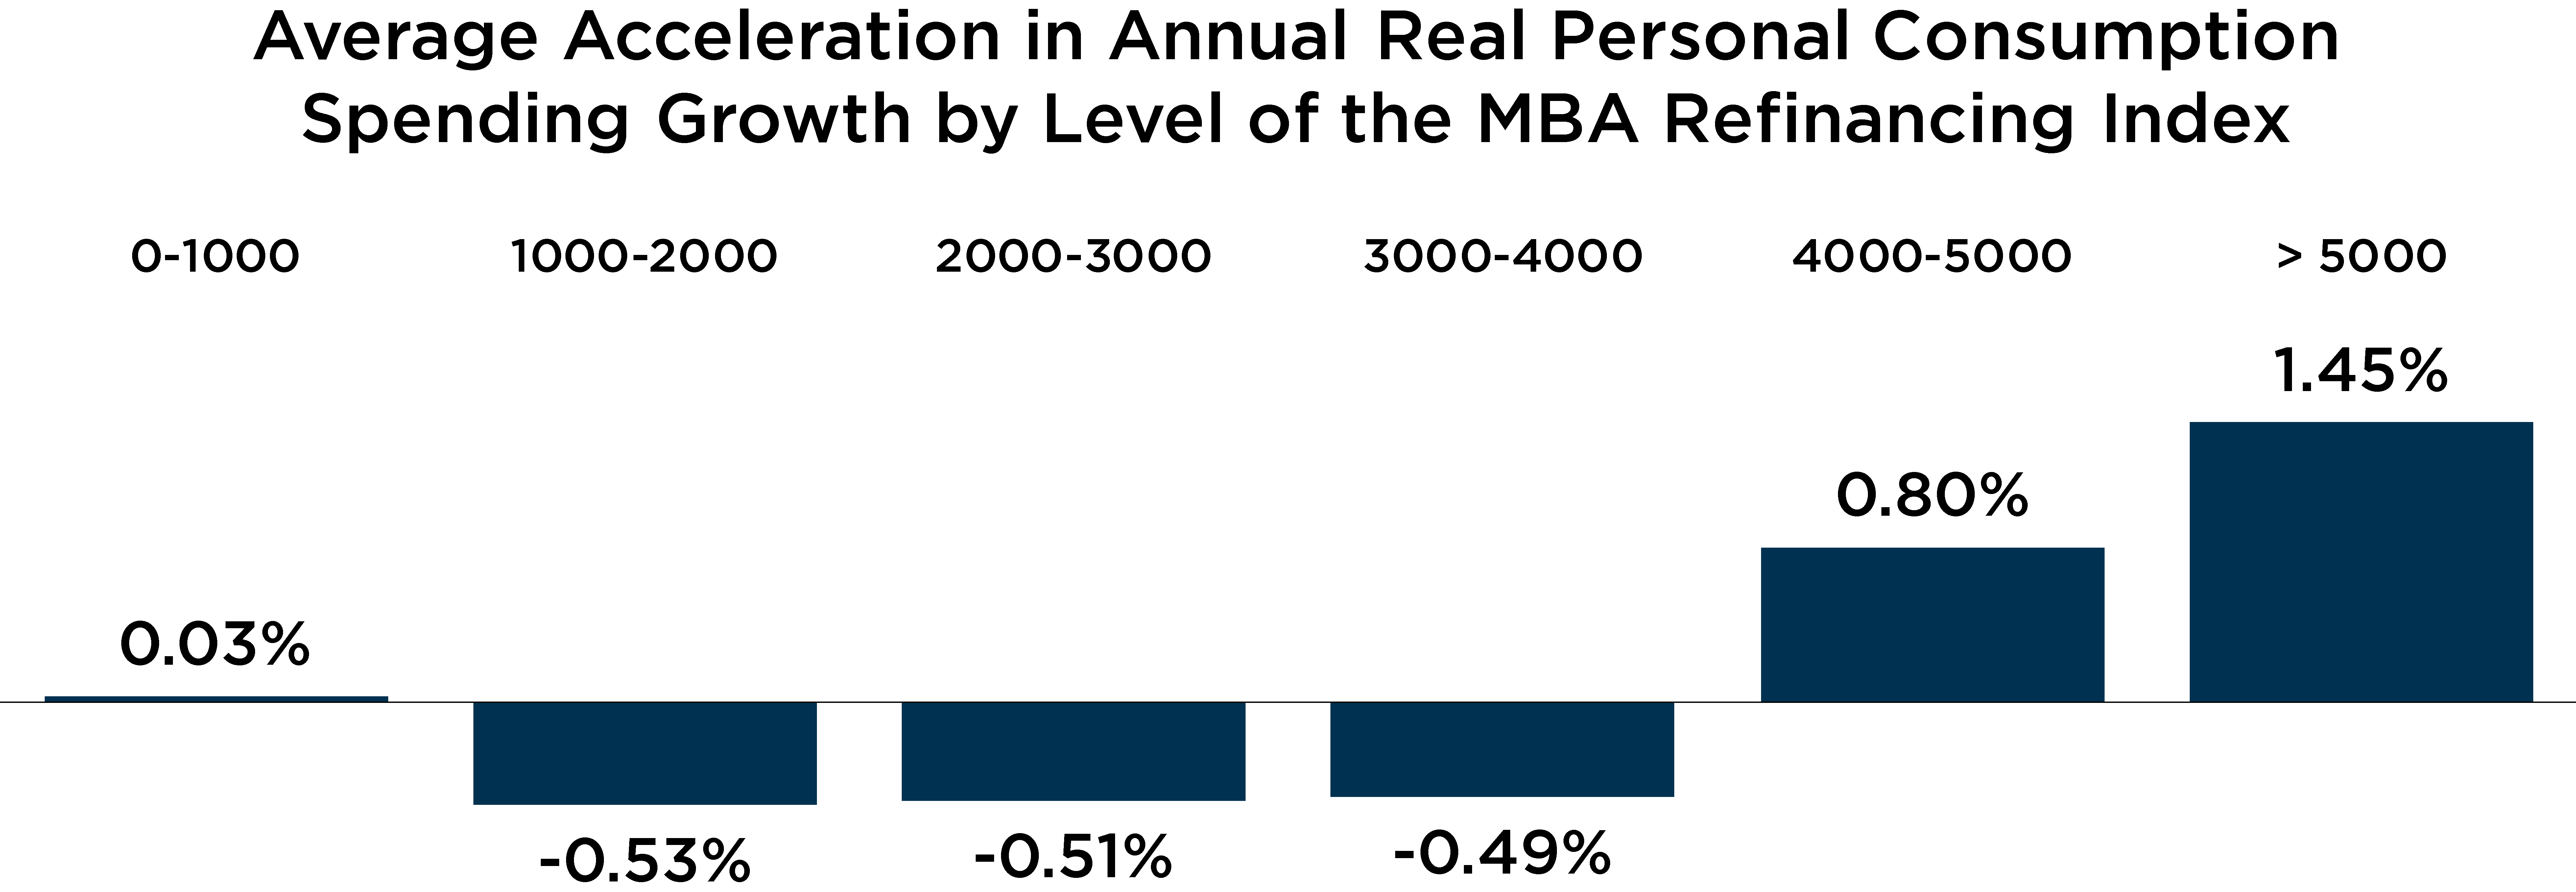 Graph depicting average acceleration in annual real personal consumption spending growth by level of the MBA refinancing index